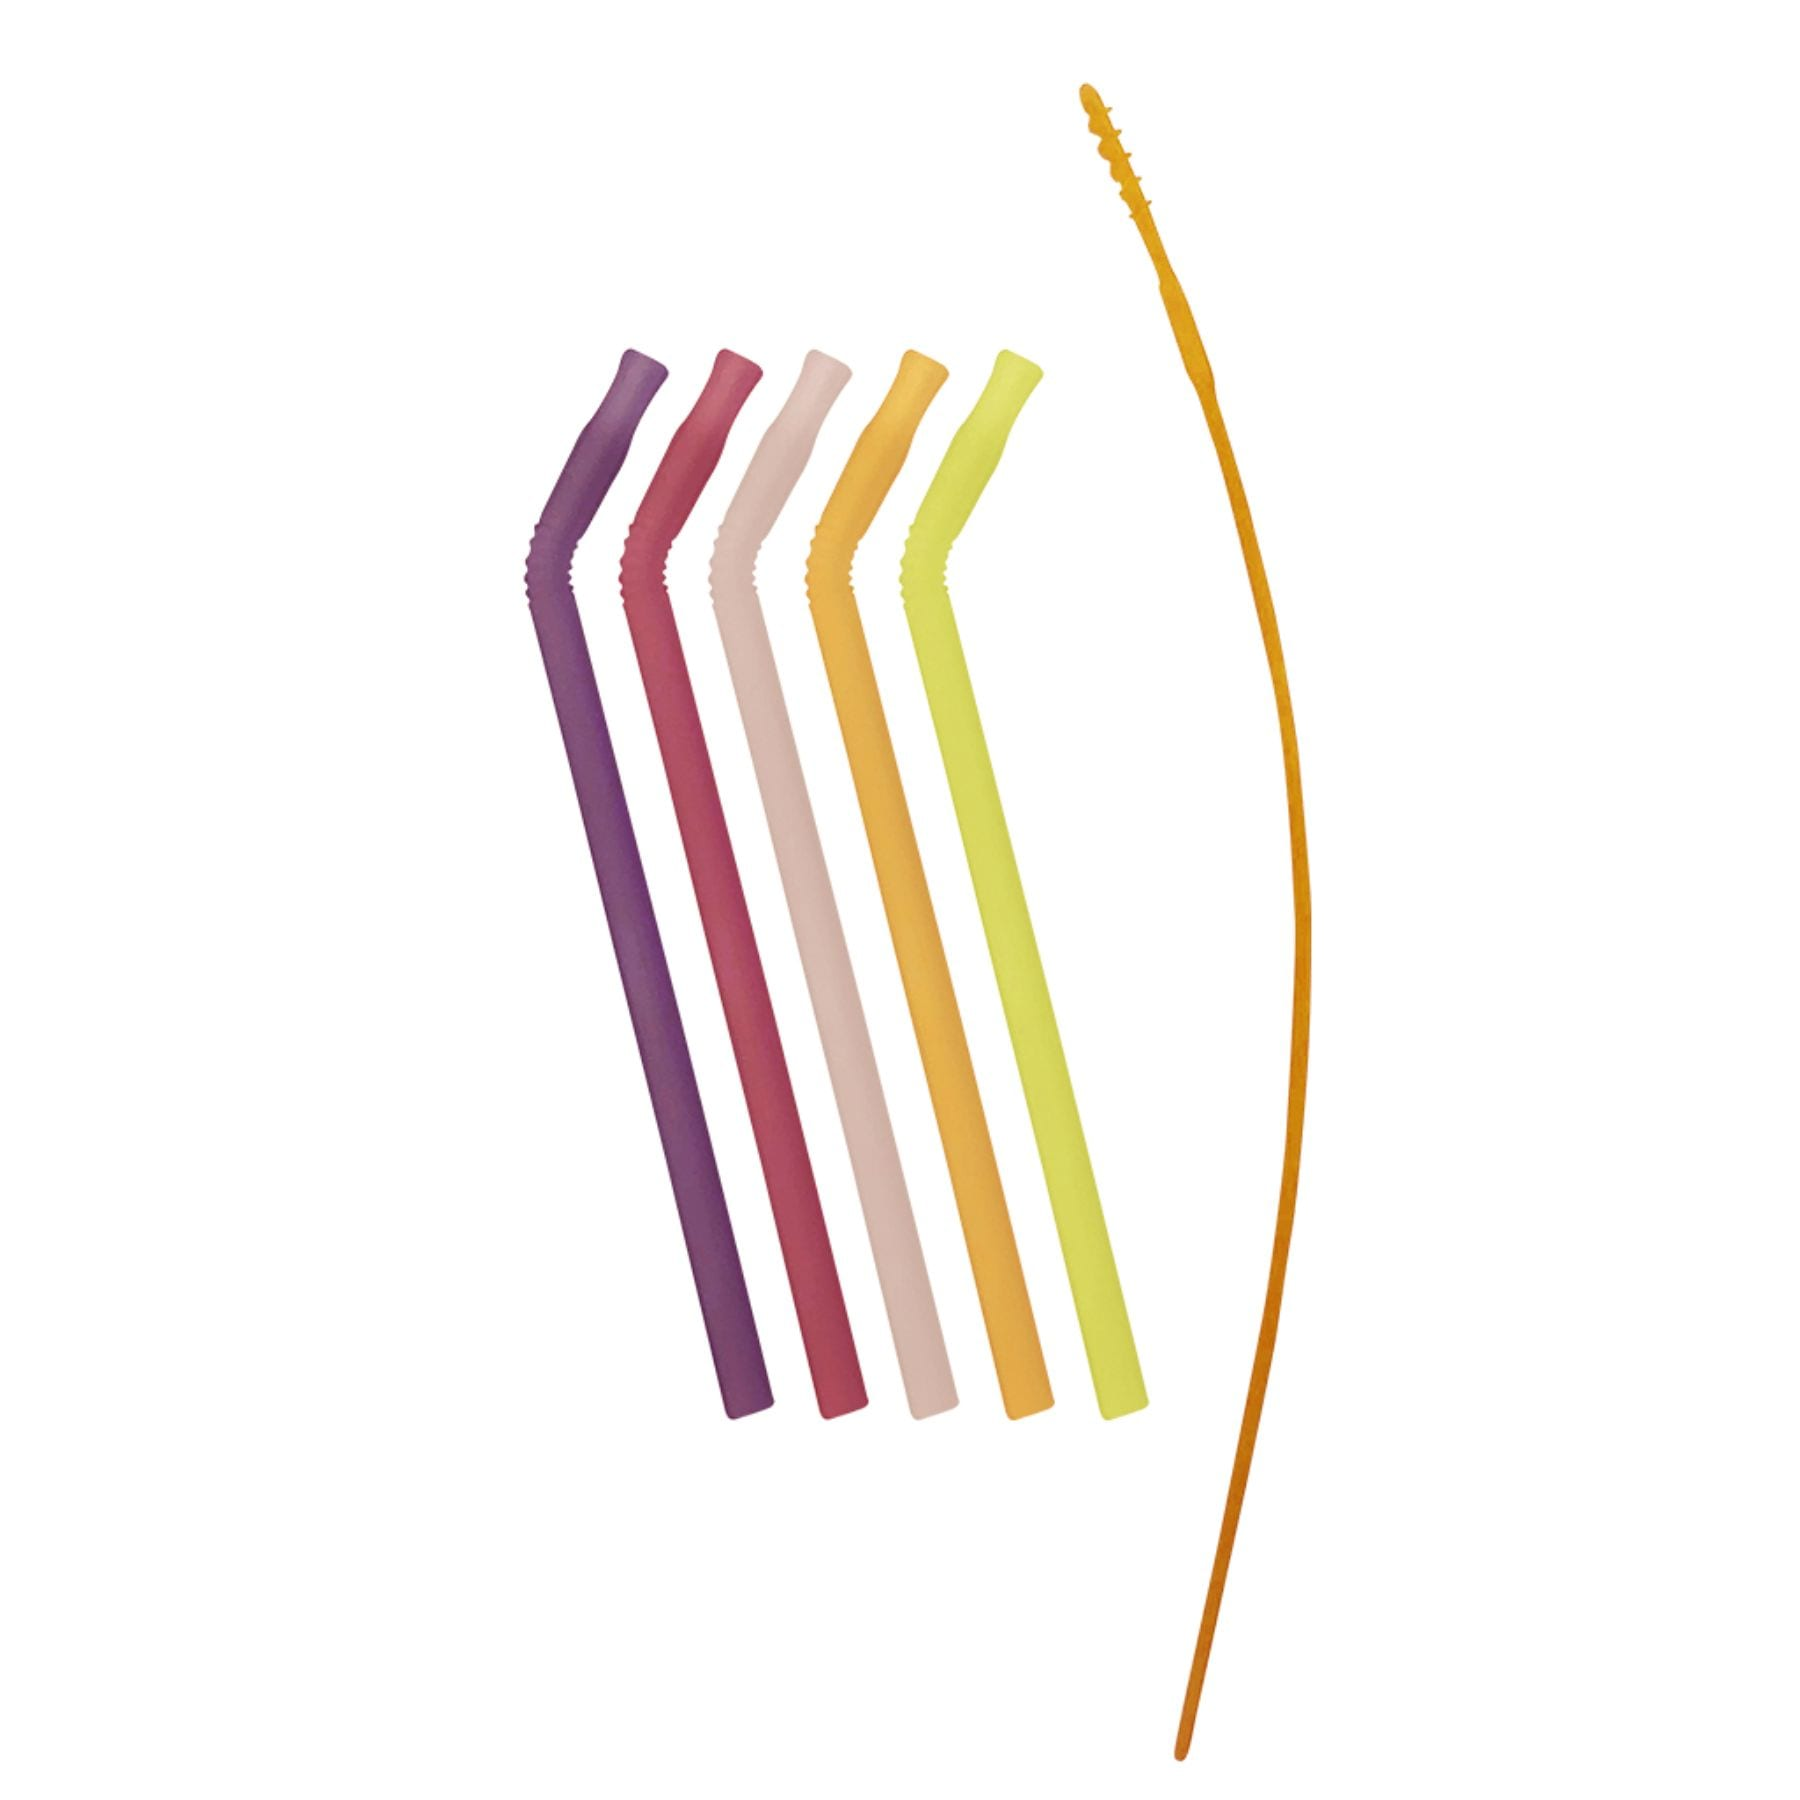 b.box Silicone Straw 5-Pack - Very Berry